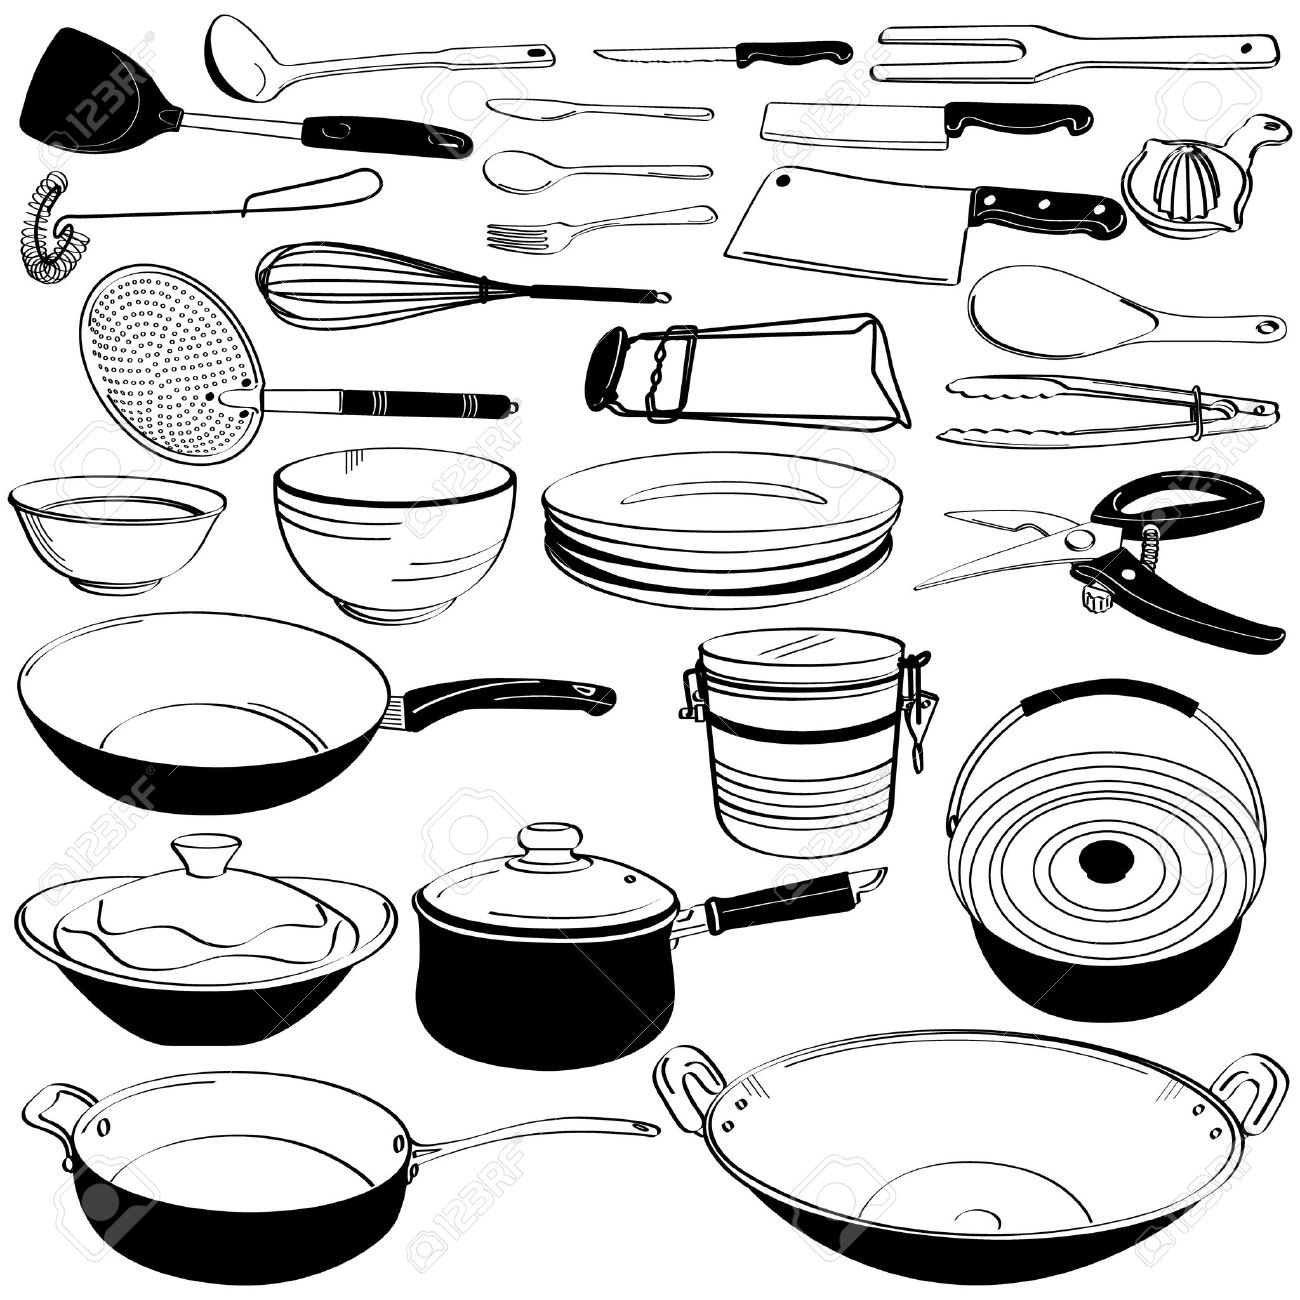 Kitchen Utensils Drawings Kitchen Tool Utensil Equipment